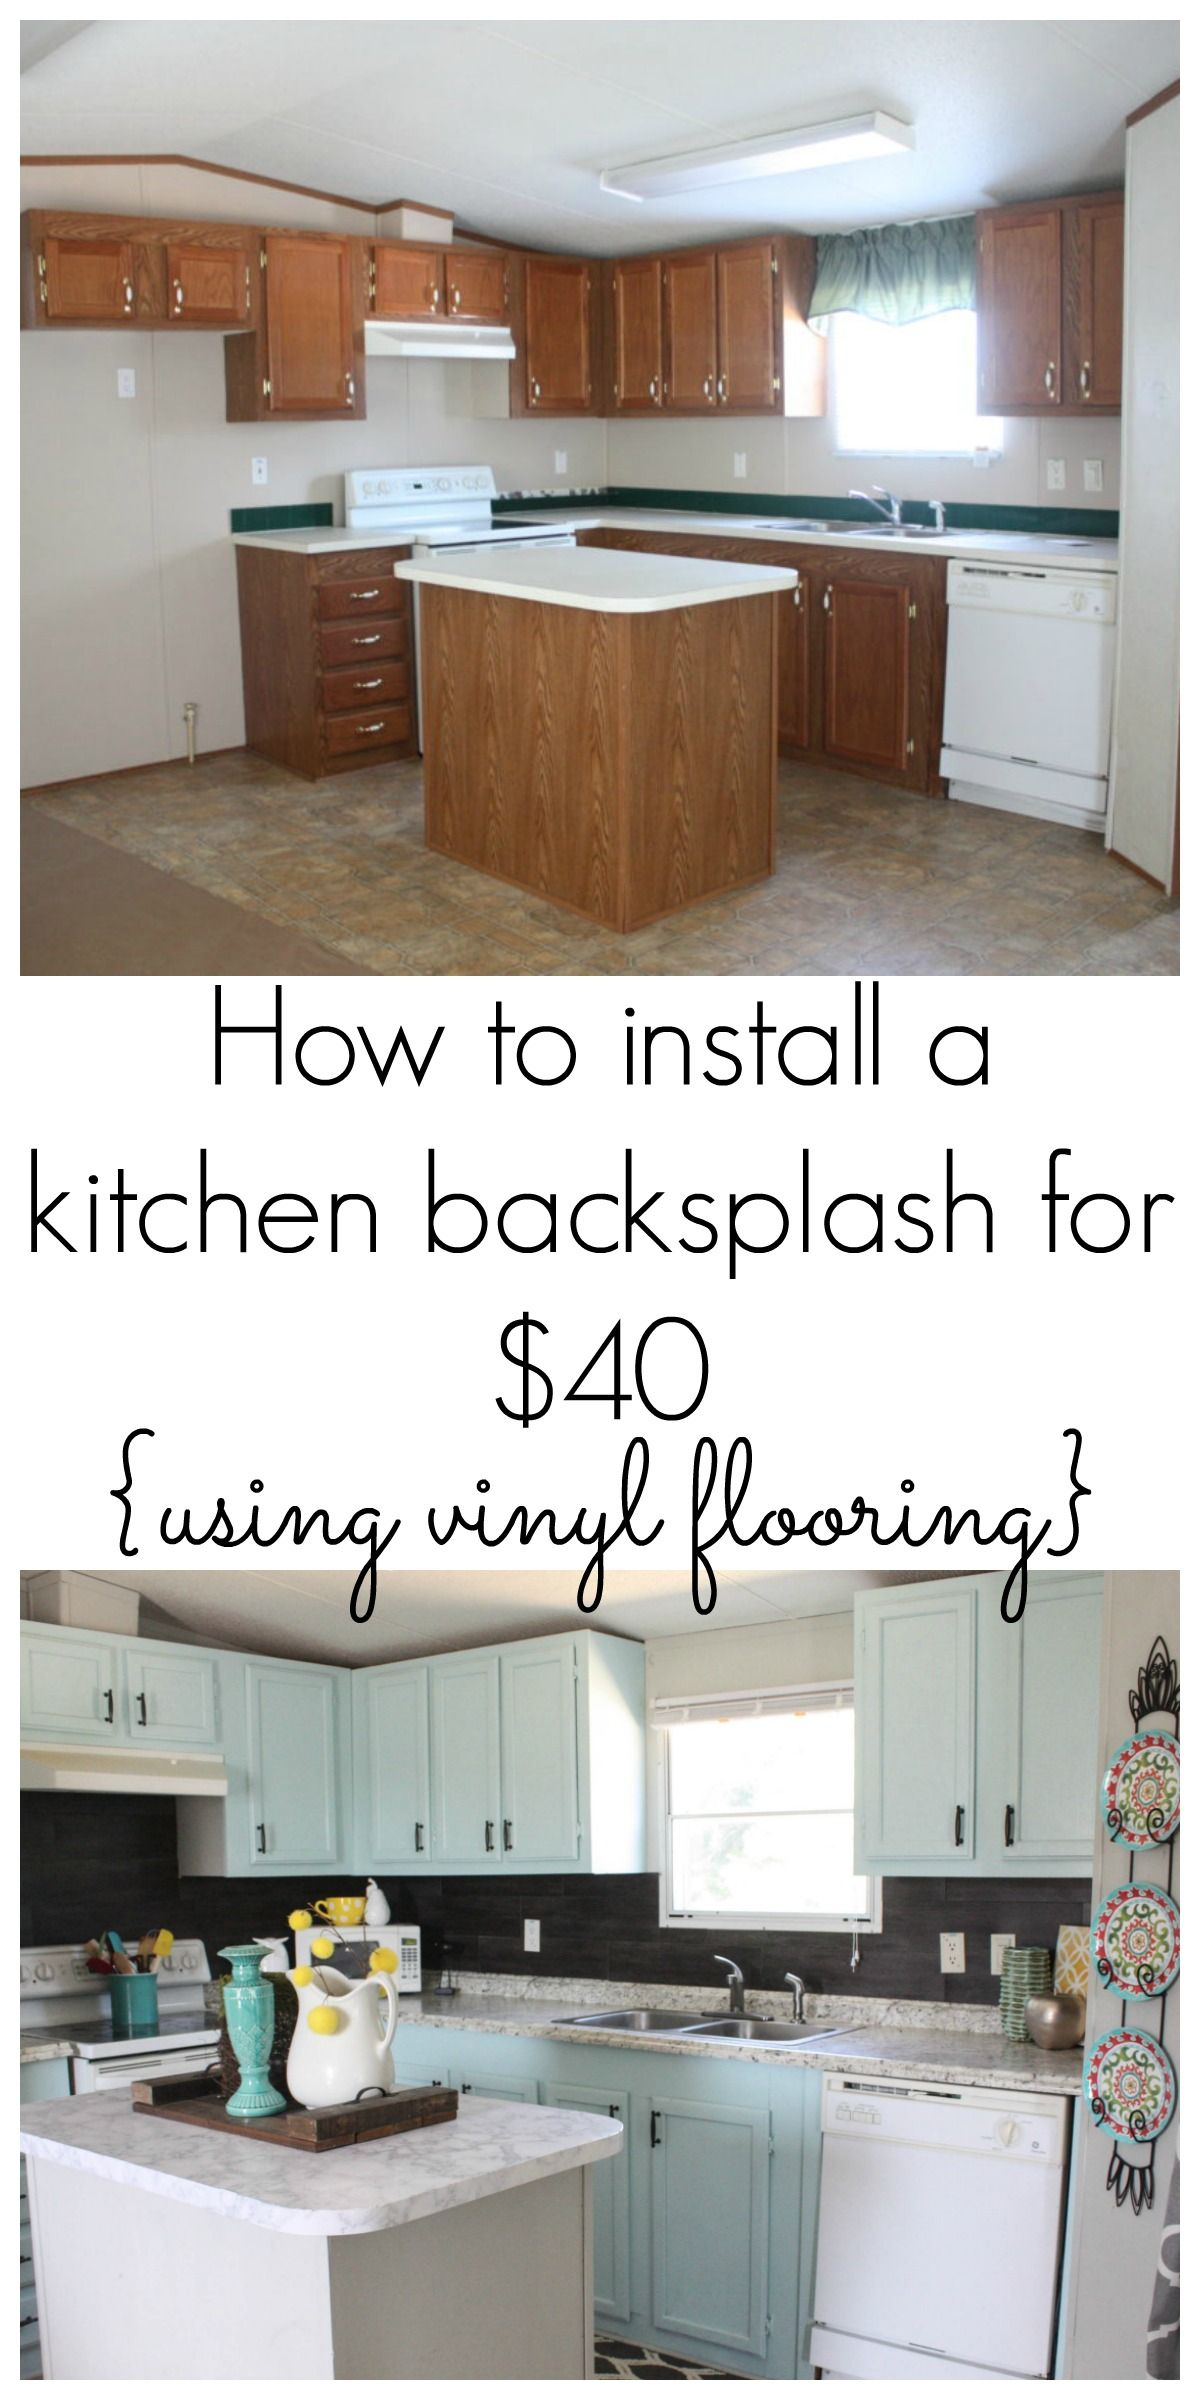 If You Are Looking For A Cheap And Gorgeous Backsplash But You Have A Tight Budget